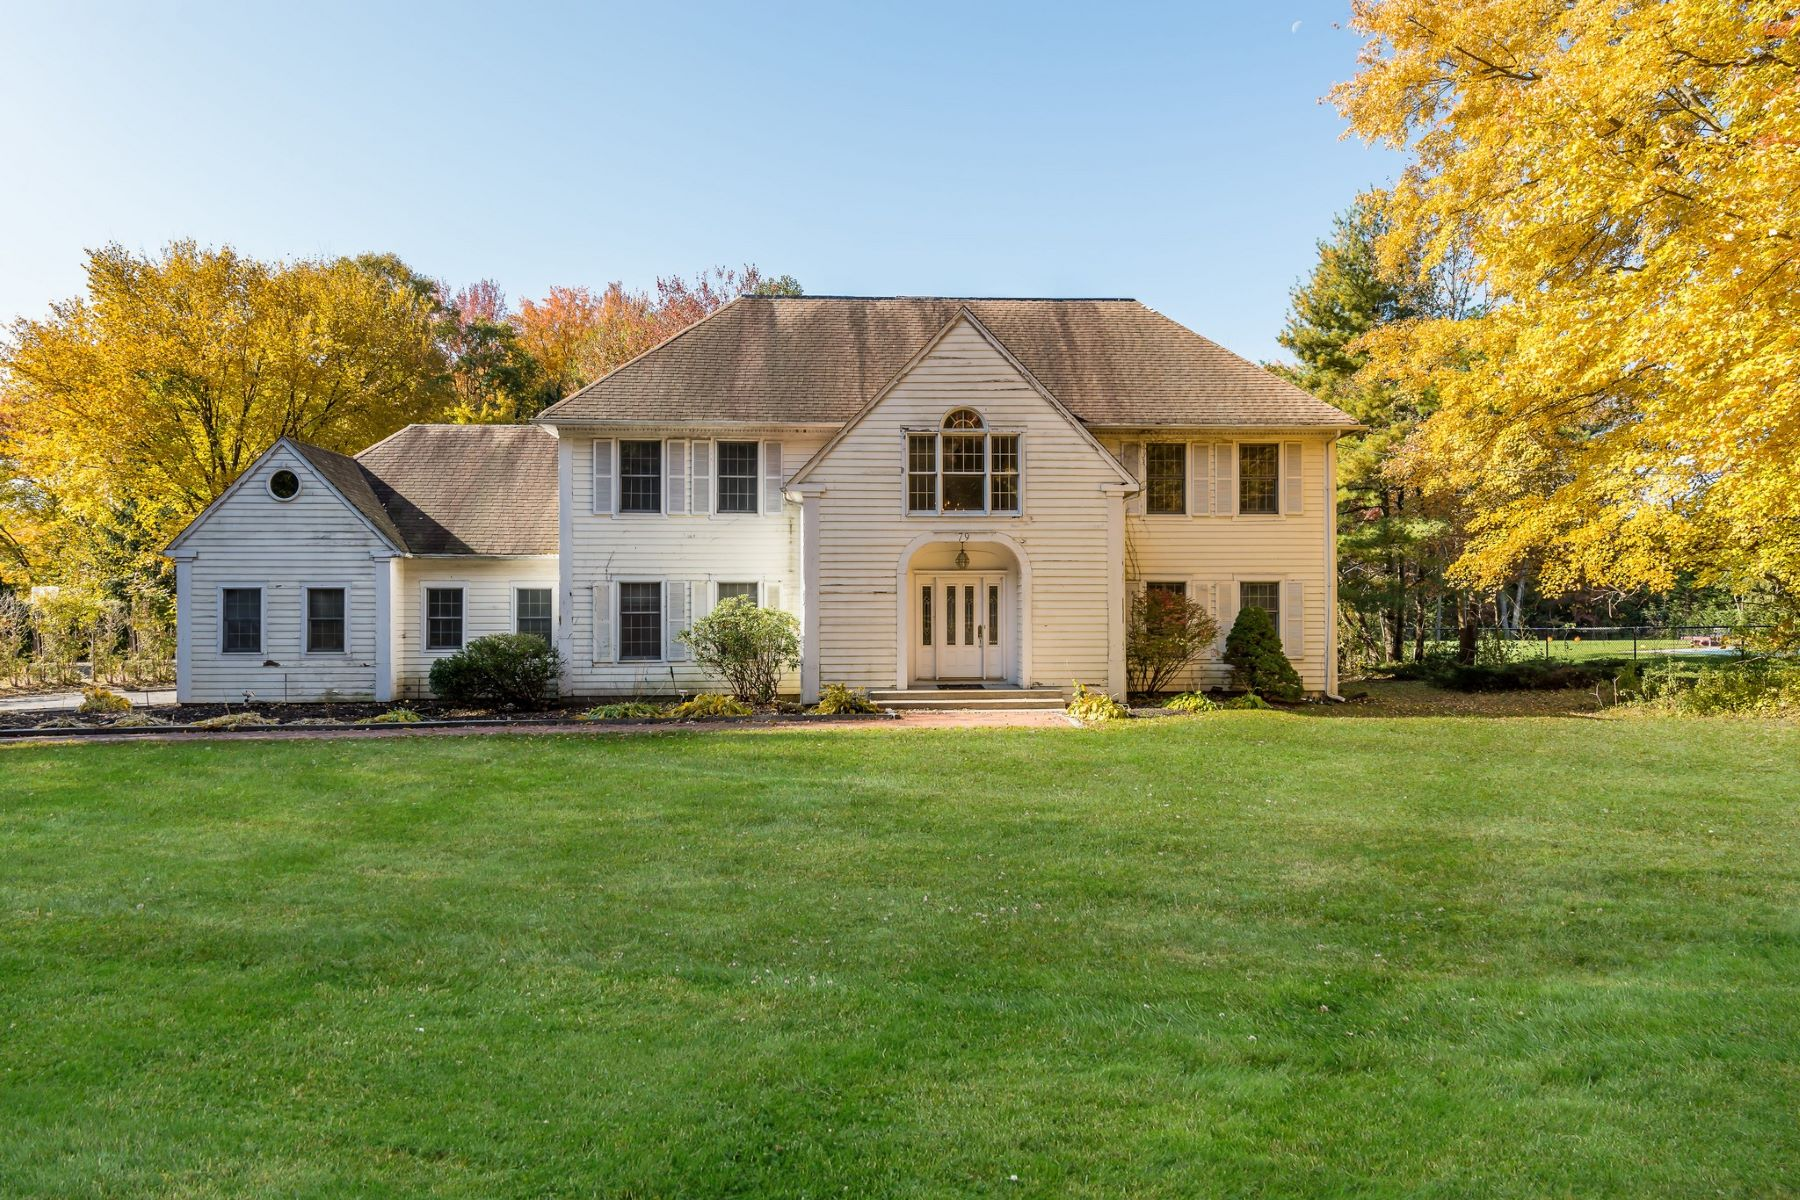 Single Family Homes for Active at Old Brookville 79 Mccouns Lane Old Brookville, New York 11545 United States